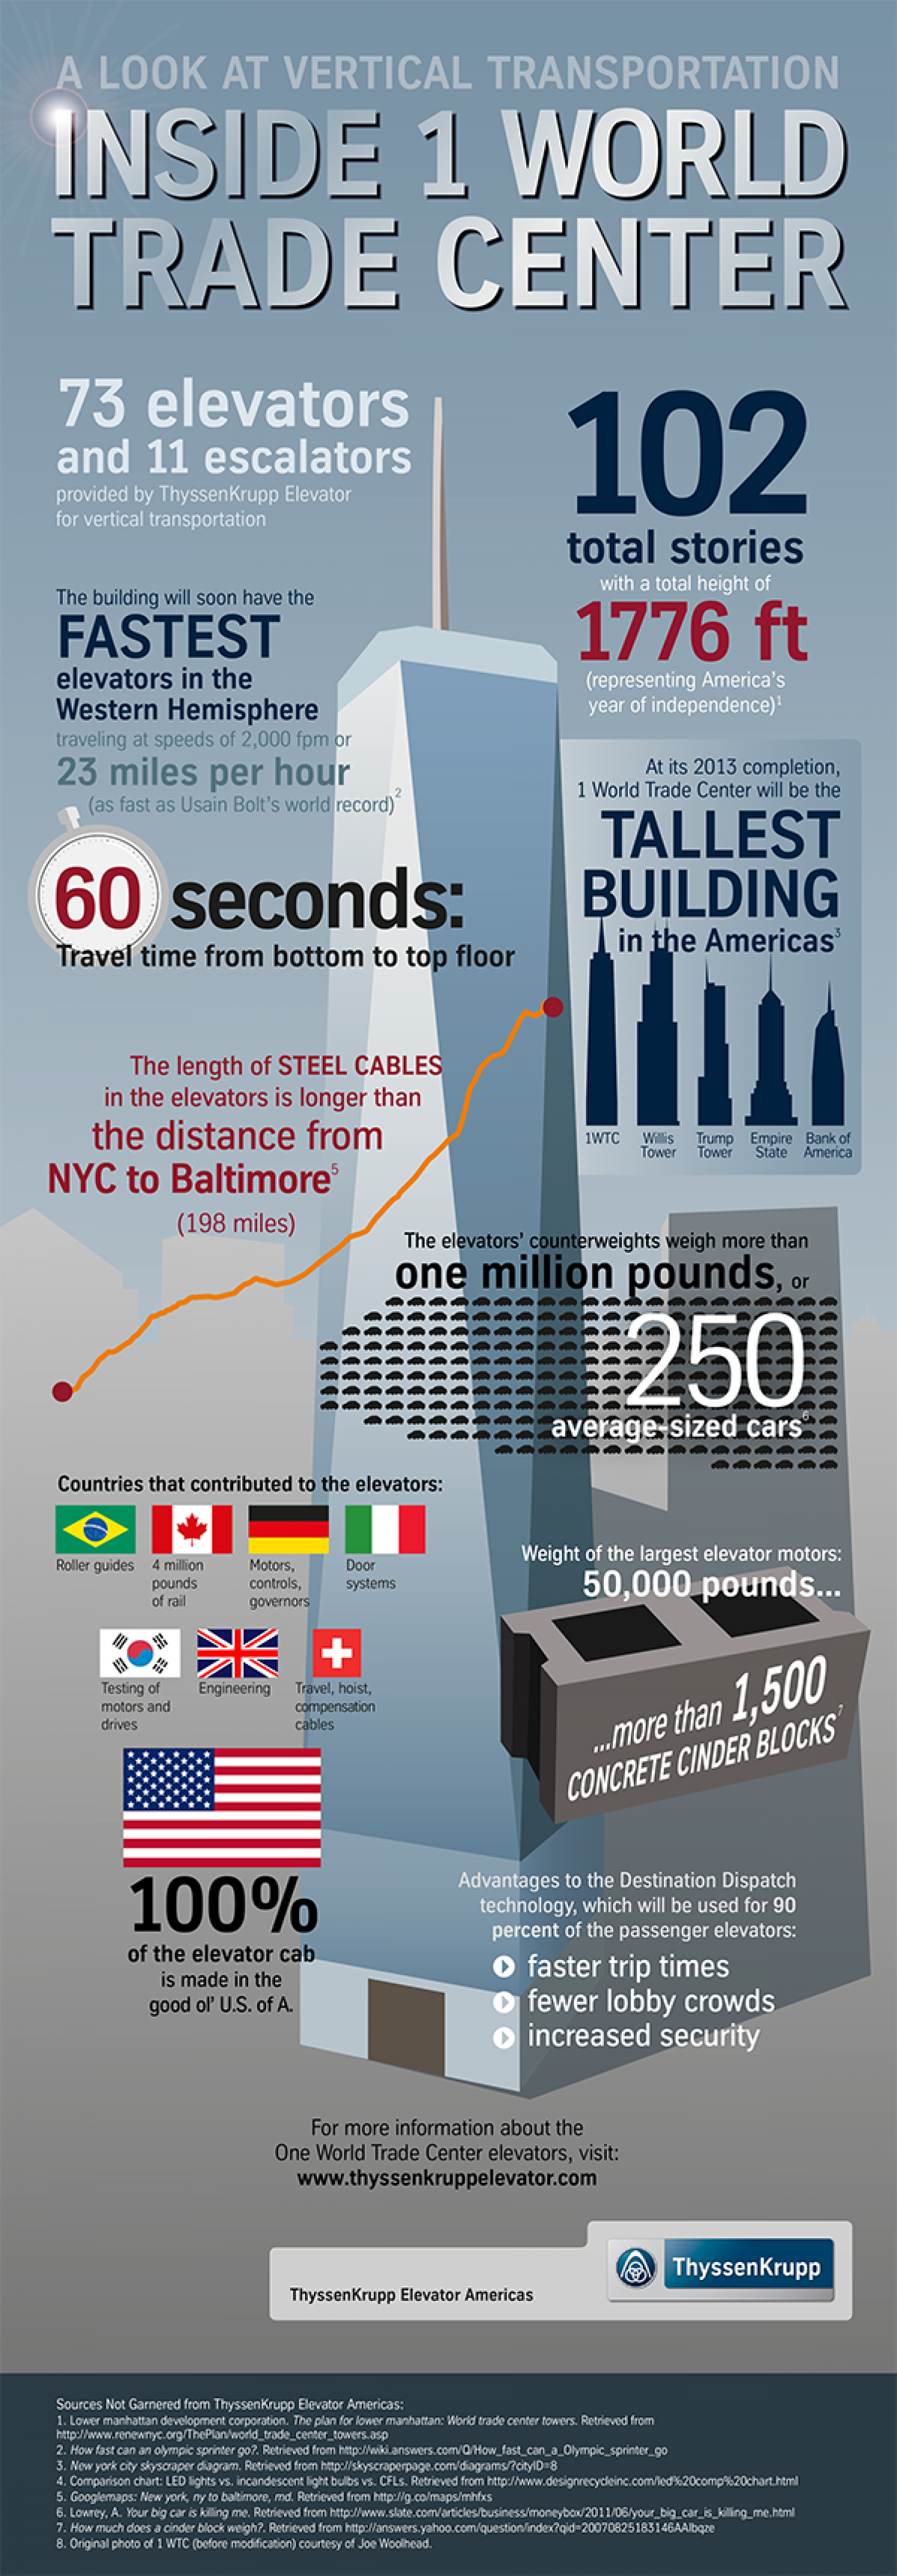 A Look at Vertical Transportation Inside One World Trade Center Infographic